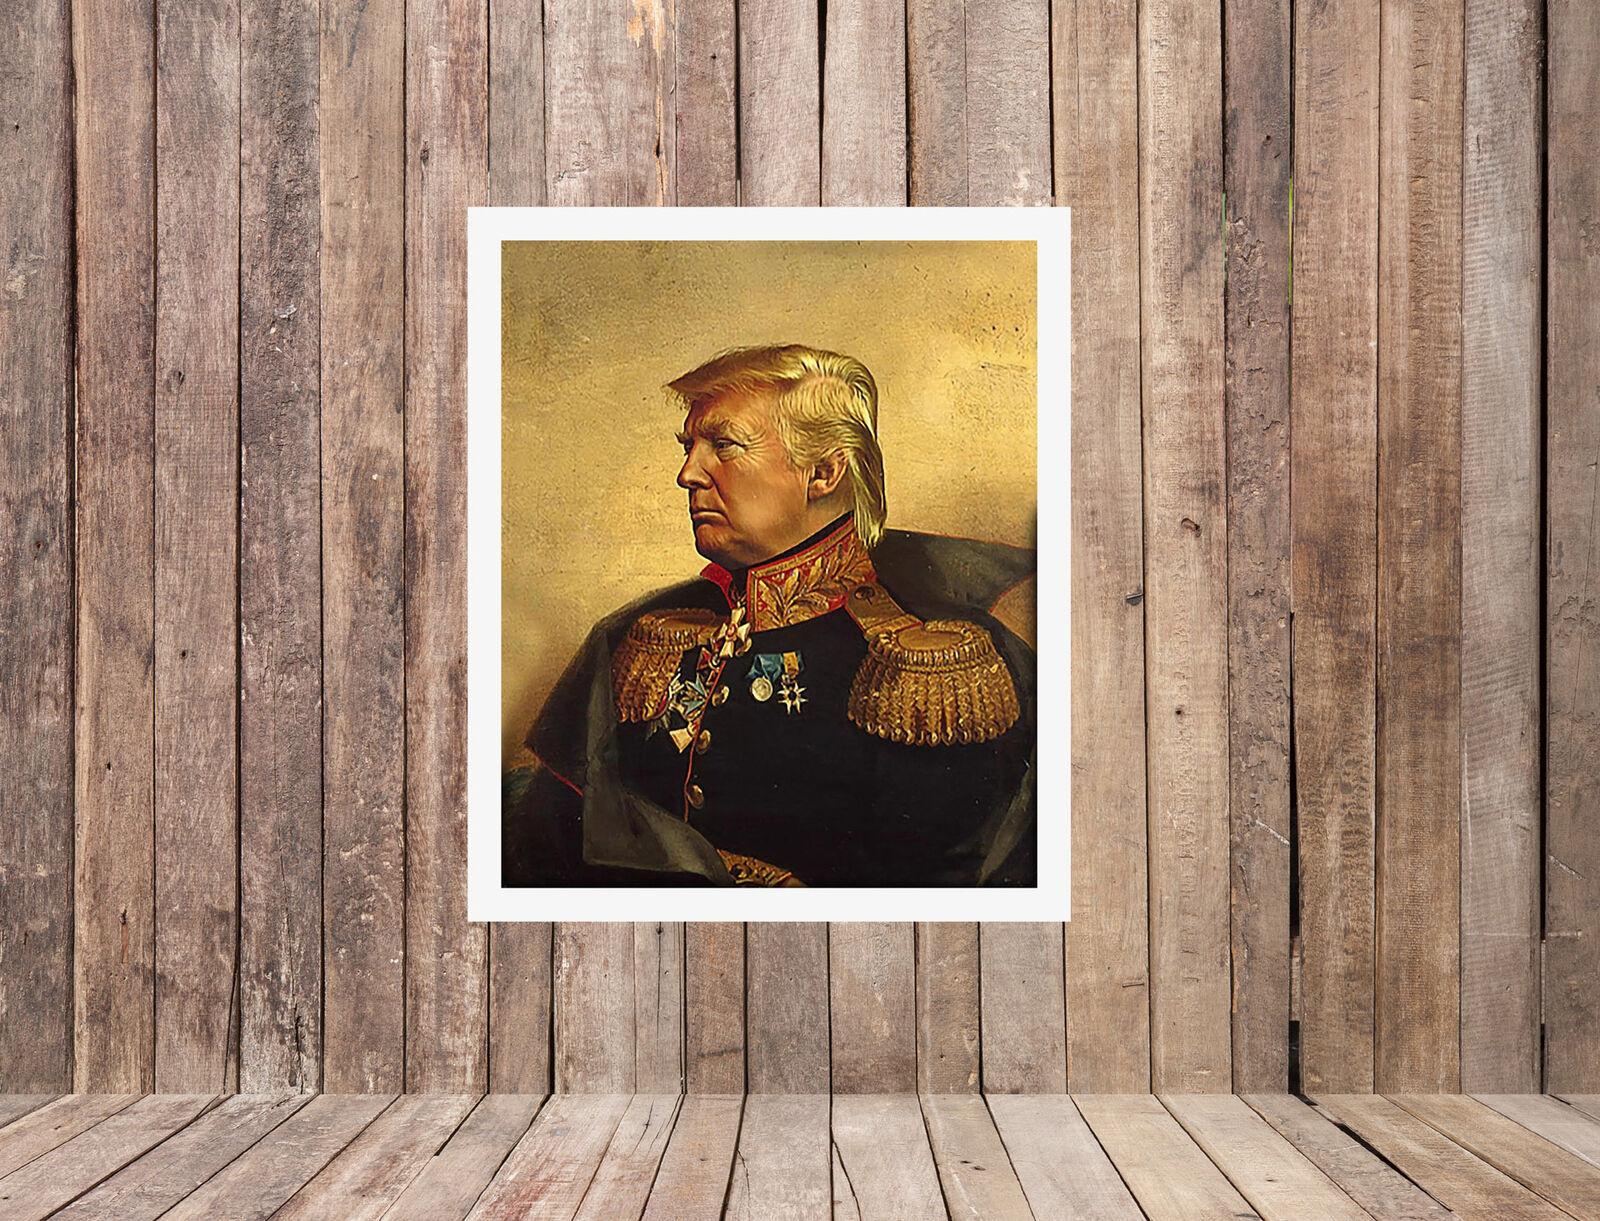 """20X25"""" Oil Painting Hd Print Donald Trump On Canvas Deco Wall Poster Pertaining To Wall Decor By World Menagerie (Gallery 30 of 30)"""